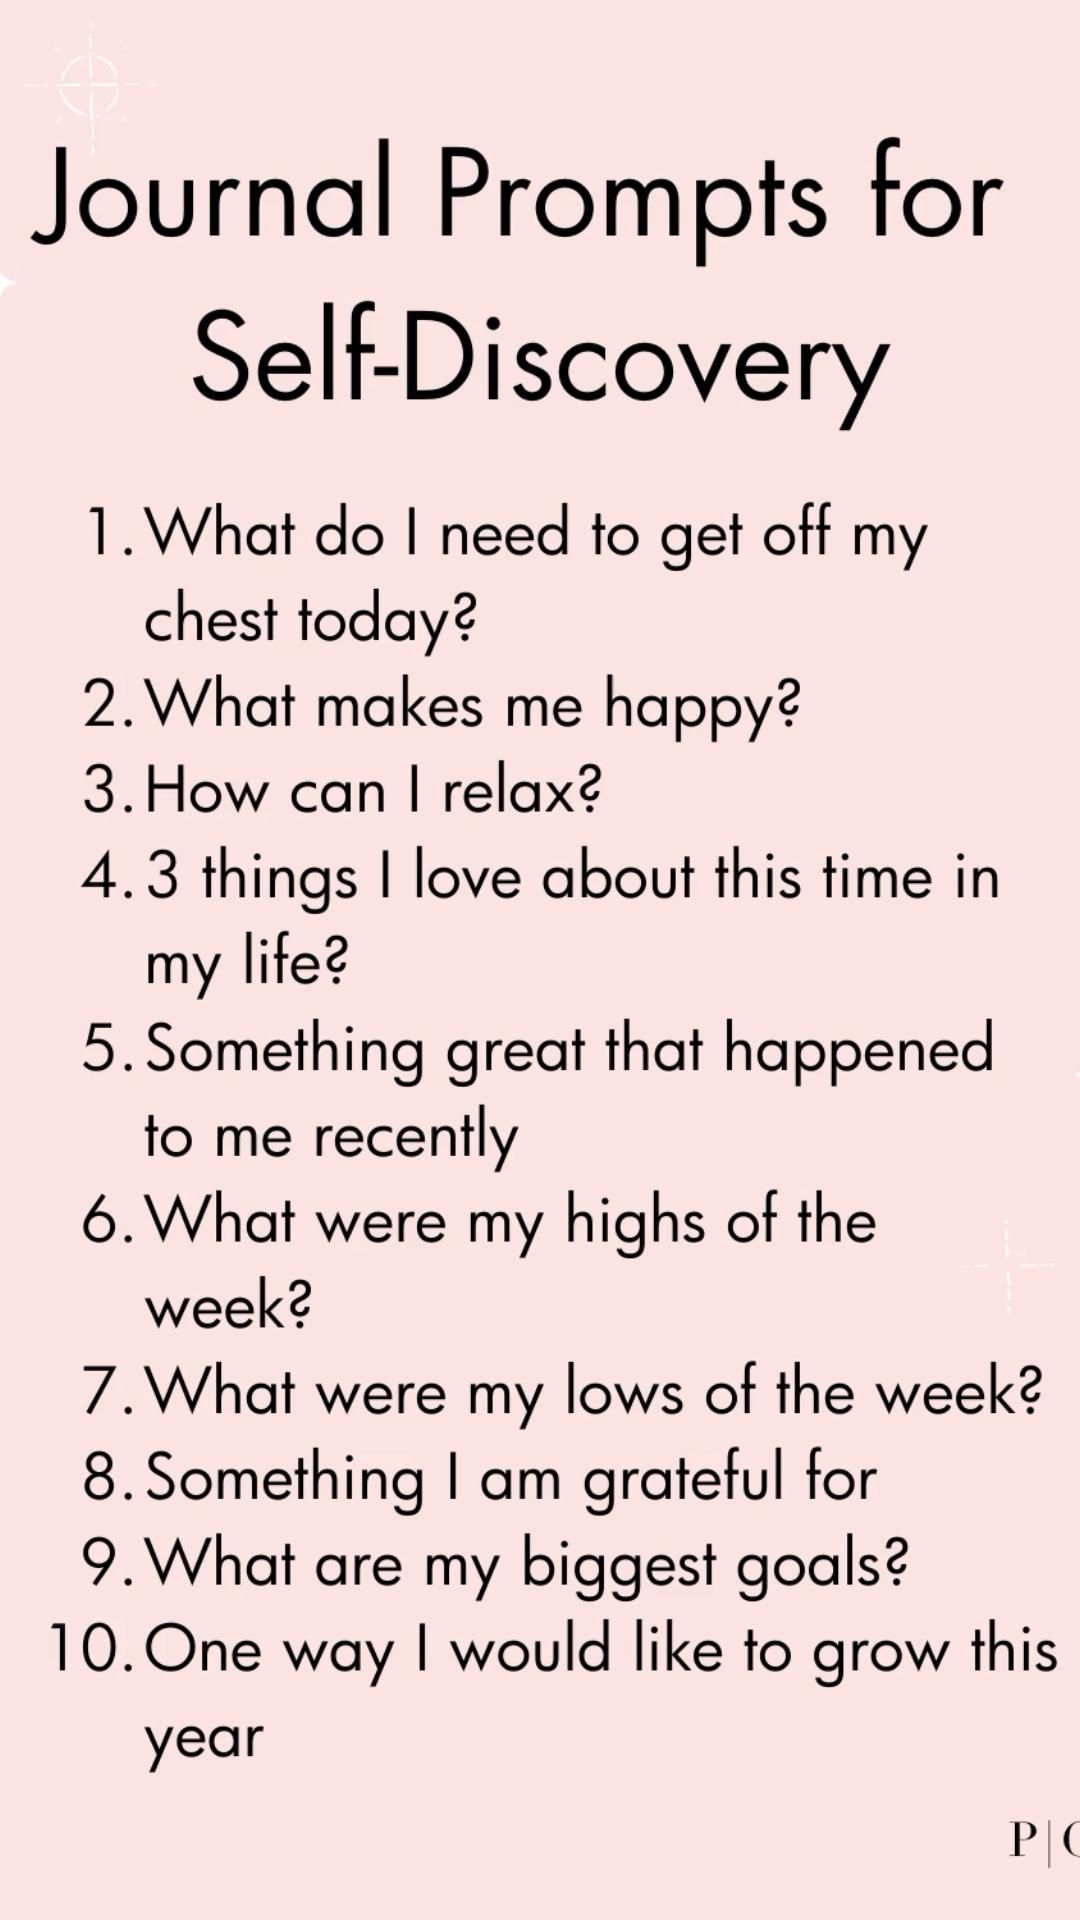 Journal prompts for self-discovery! #gratitudejournal #journal #prompts